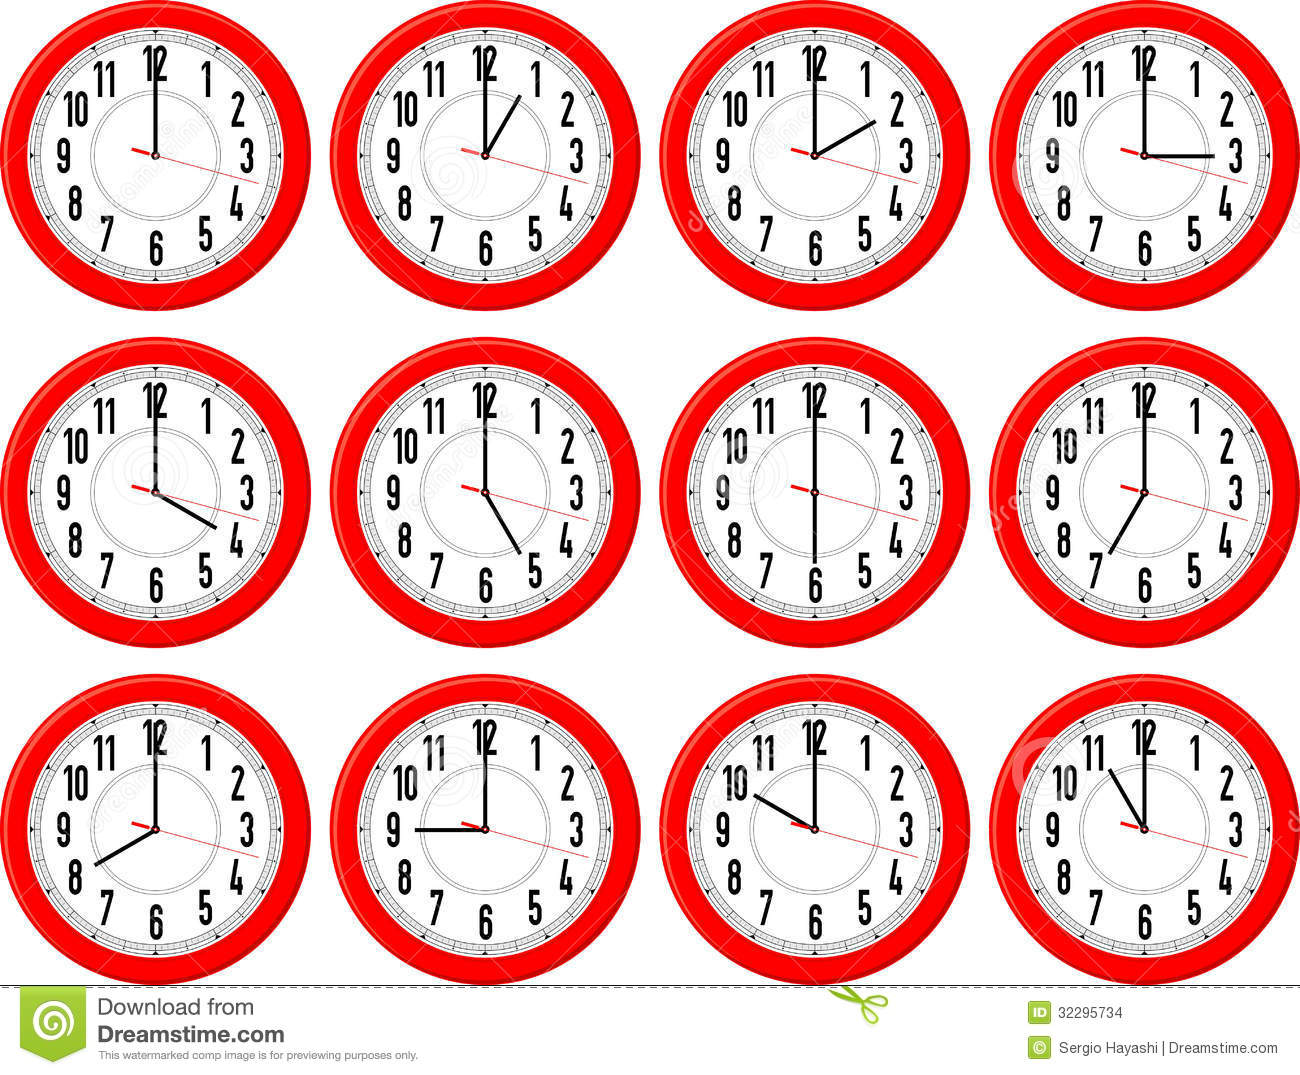 Red clocks isolated on white background each showing a different hour.